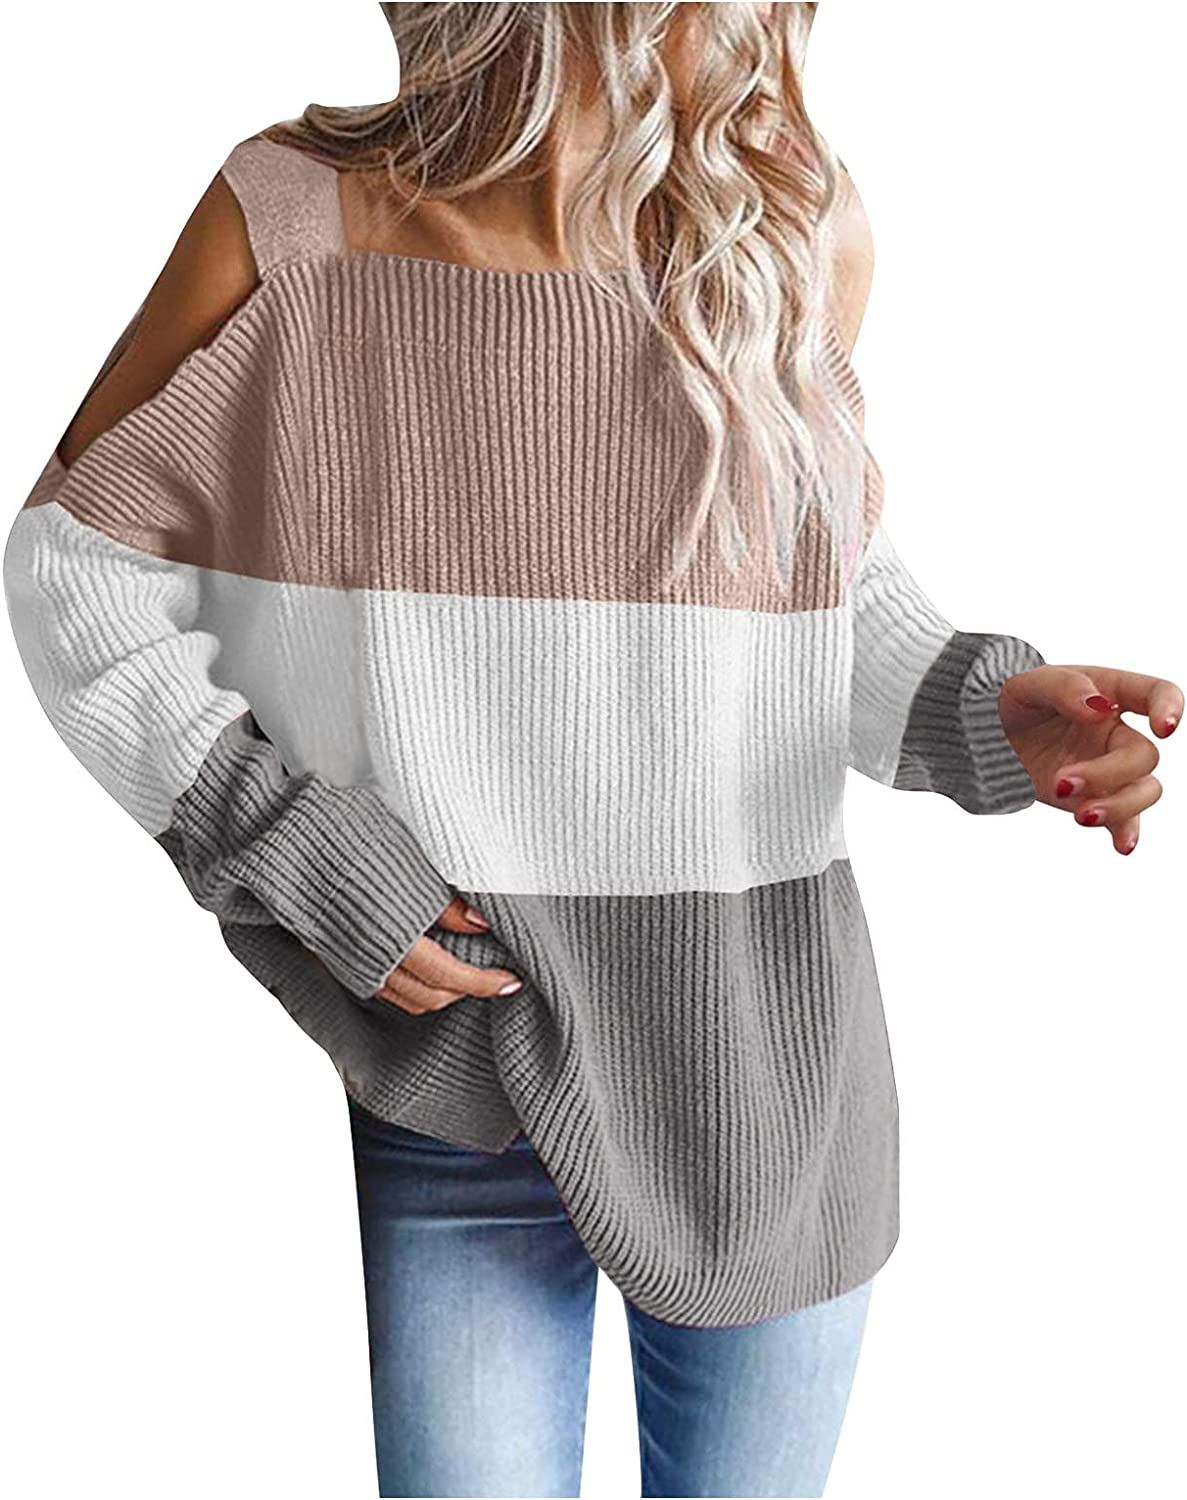 Esbelle Womens Cold Shoulder Oversized Sweaters Batwing Long Sleeve Chunky Knitted Winter Tunic Tops Pullover Jumper Tops